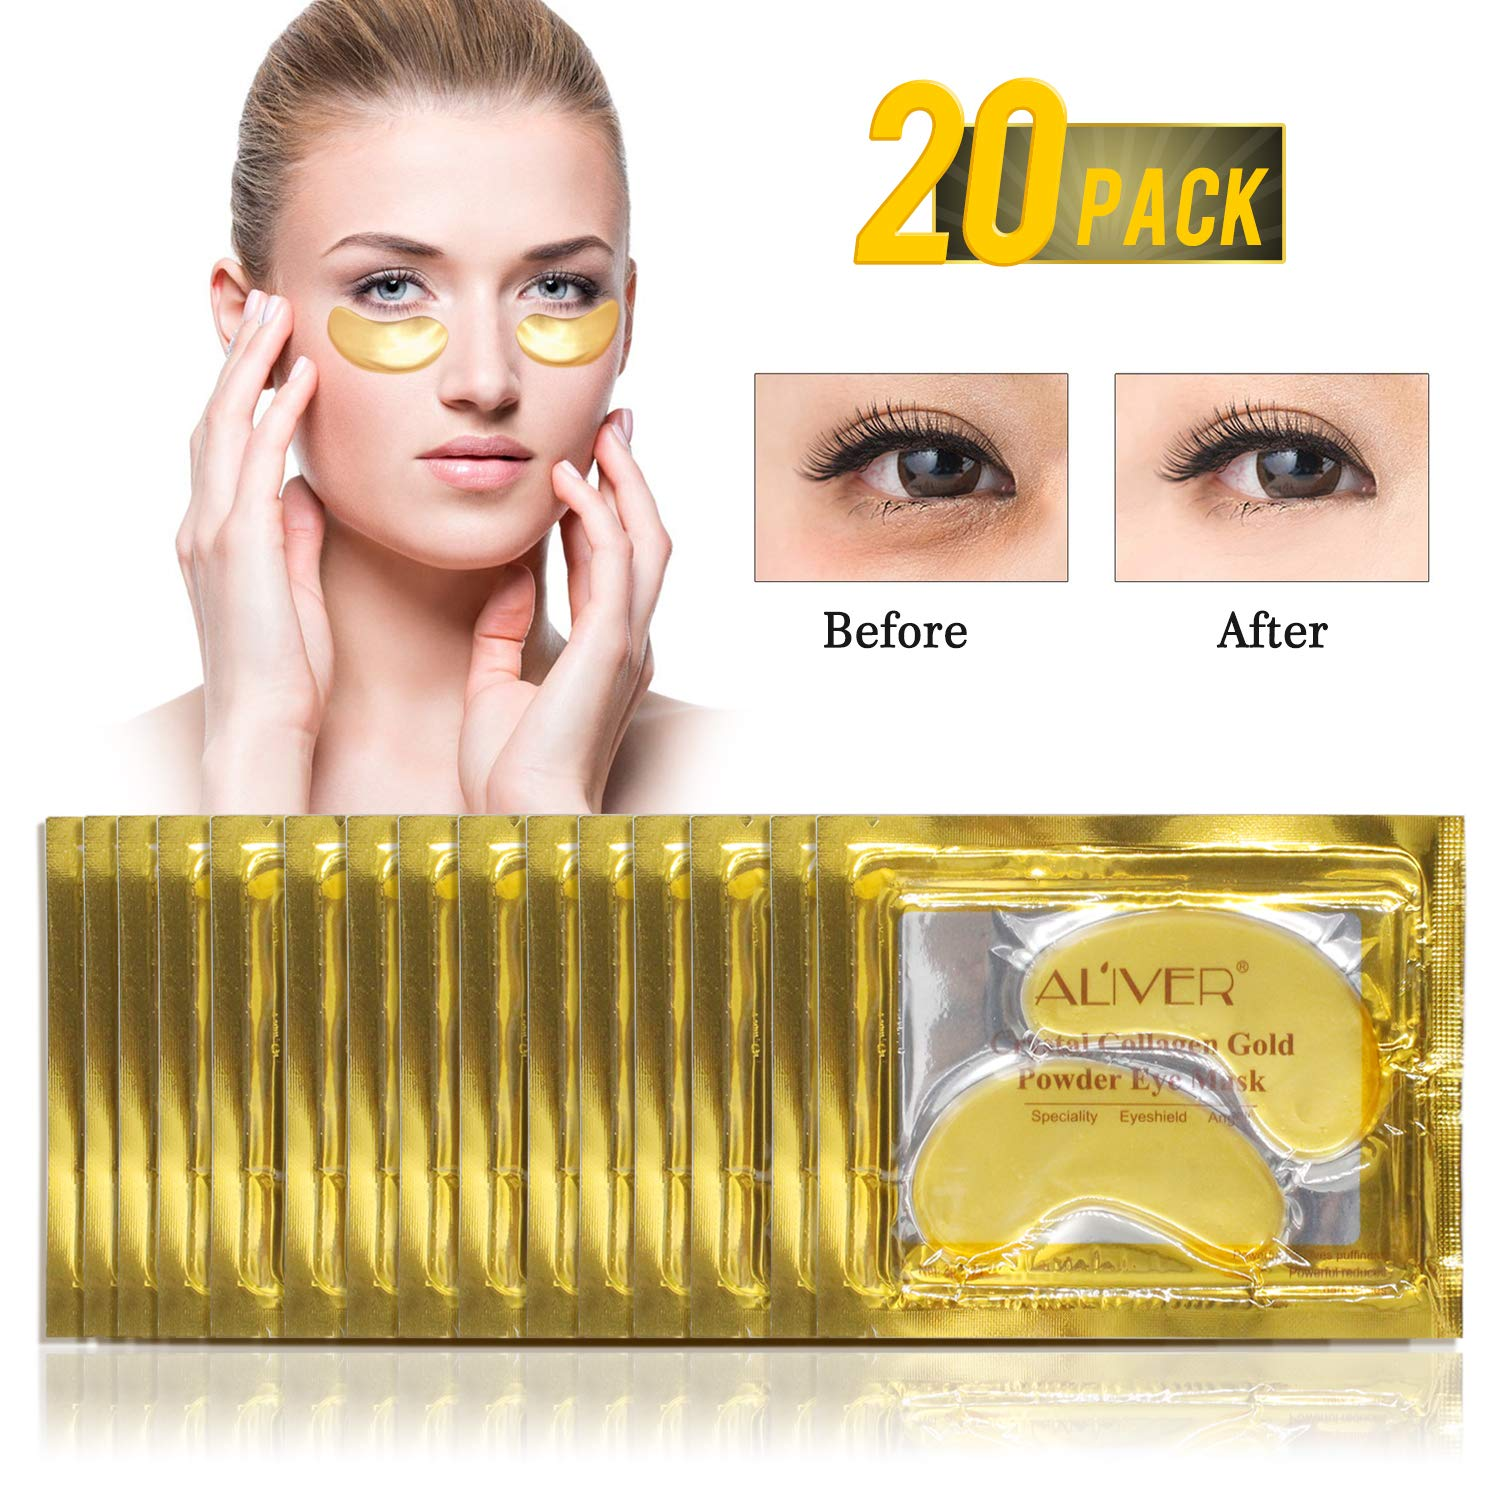 (25 Pairs) ALIVER Crystal 24K Gold Powder Gel Collagen Eye Mask,Premium Anti Aging, Anti Wrinkle, Moisturiser for Under Eye Wrinkles, Remove Bags Under Eyes, Eye Bag Removal, Under-eye, Dark Circles,Hydrating, Puffy Eyes LILY STORE